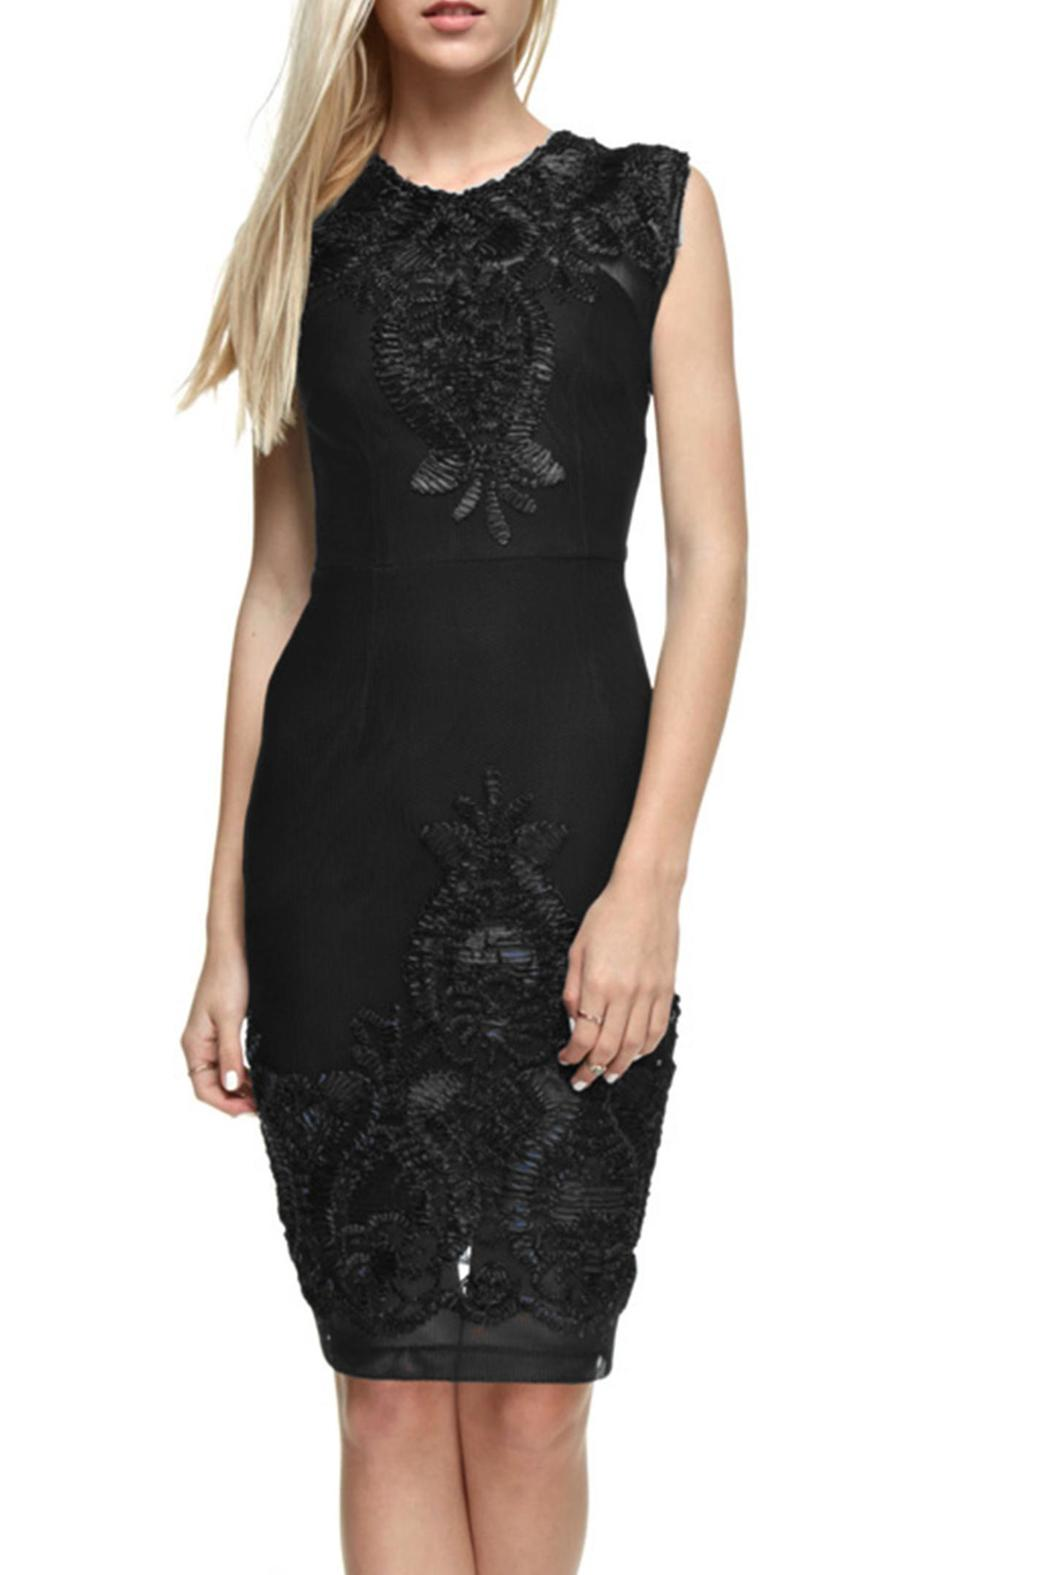 The Clothing Co Victorian Embroidered Lbd - Main Image